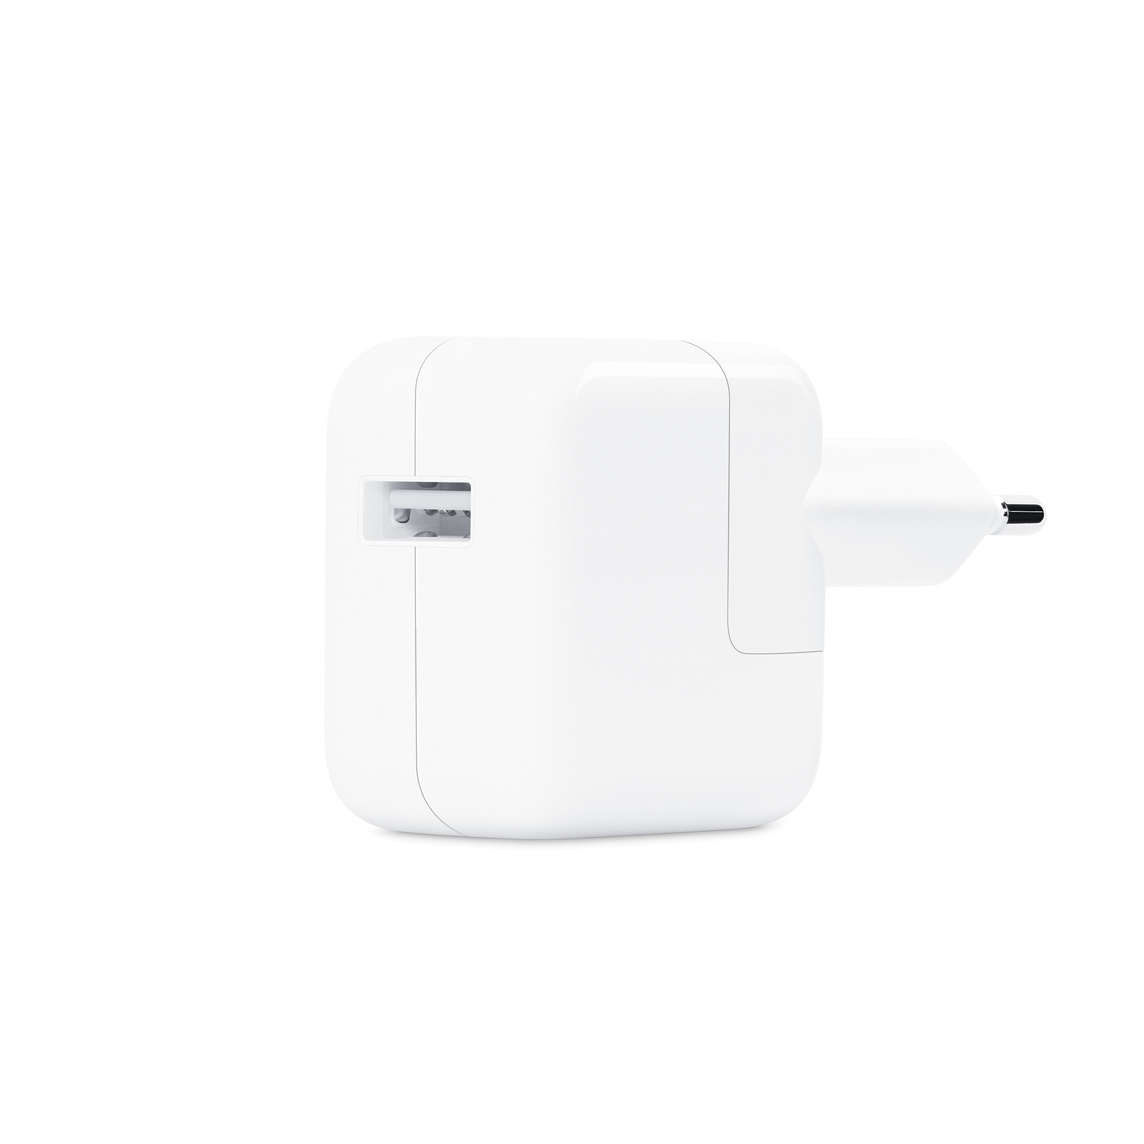 Apple USB strömadapter på 12 W